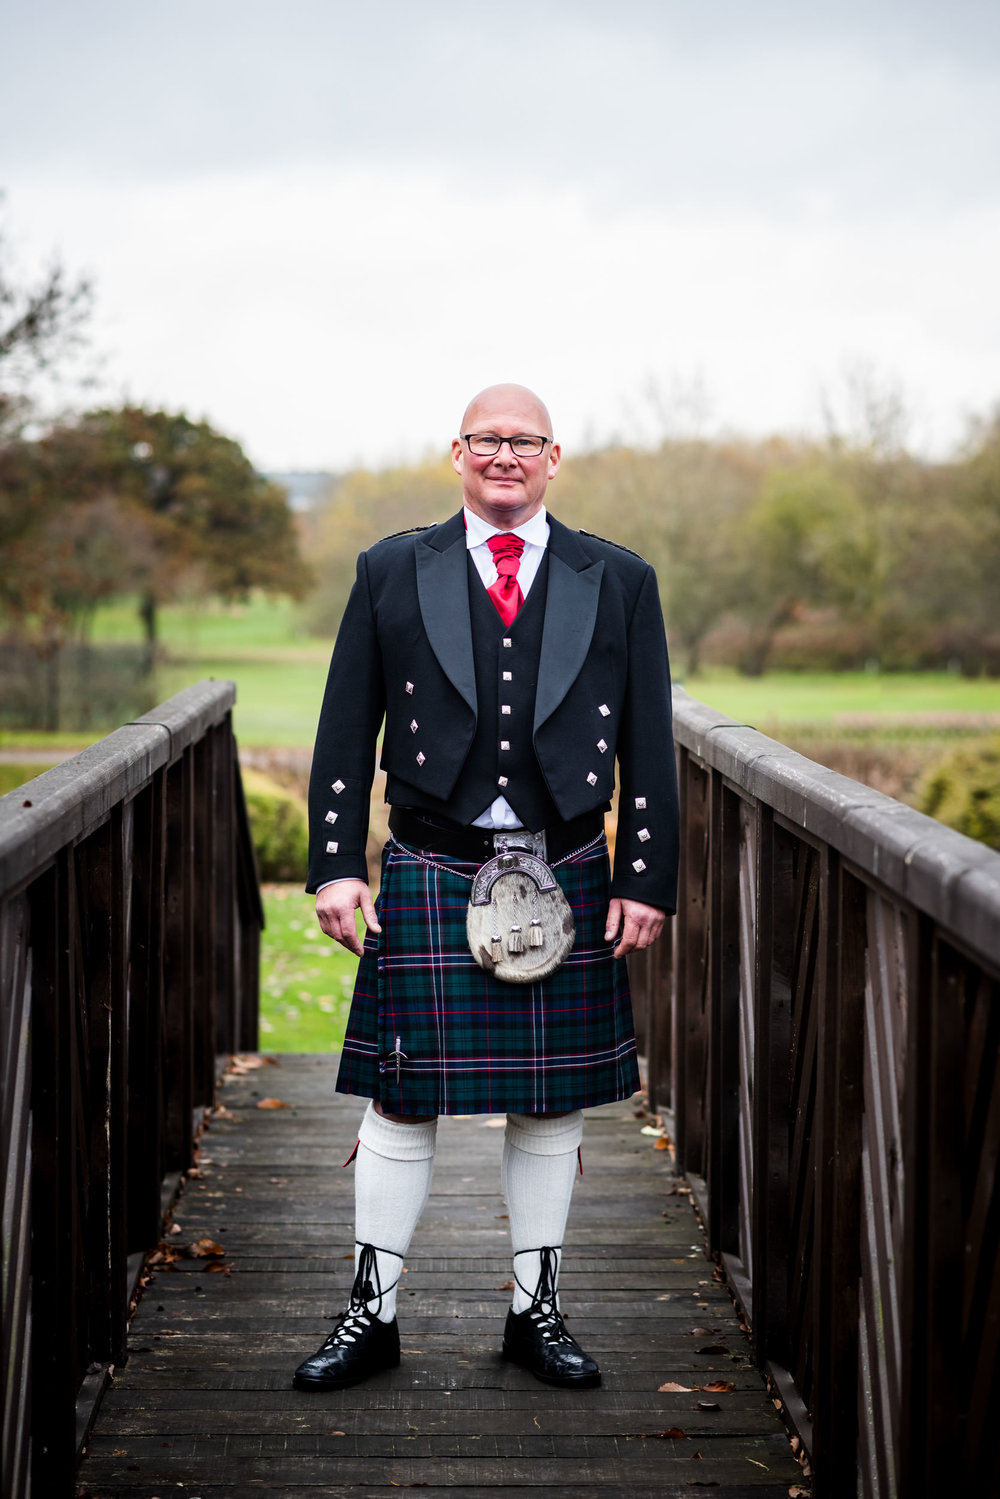 Groom Duncan in his kilt stood on the feature bridge of The Abbey Hotel Redditch